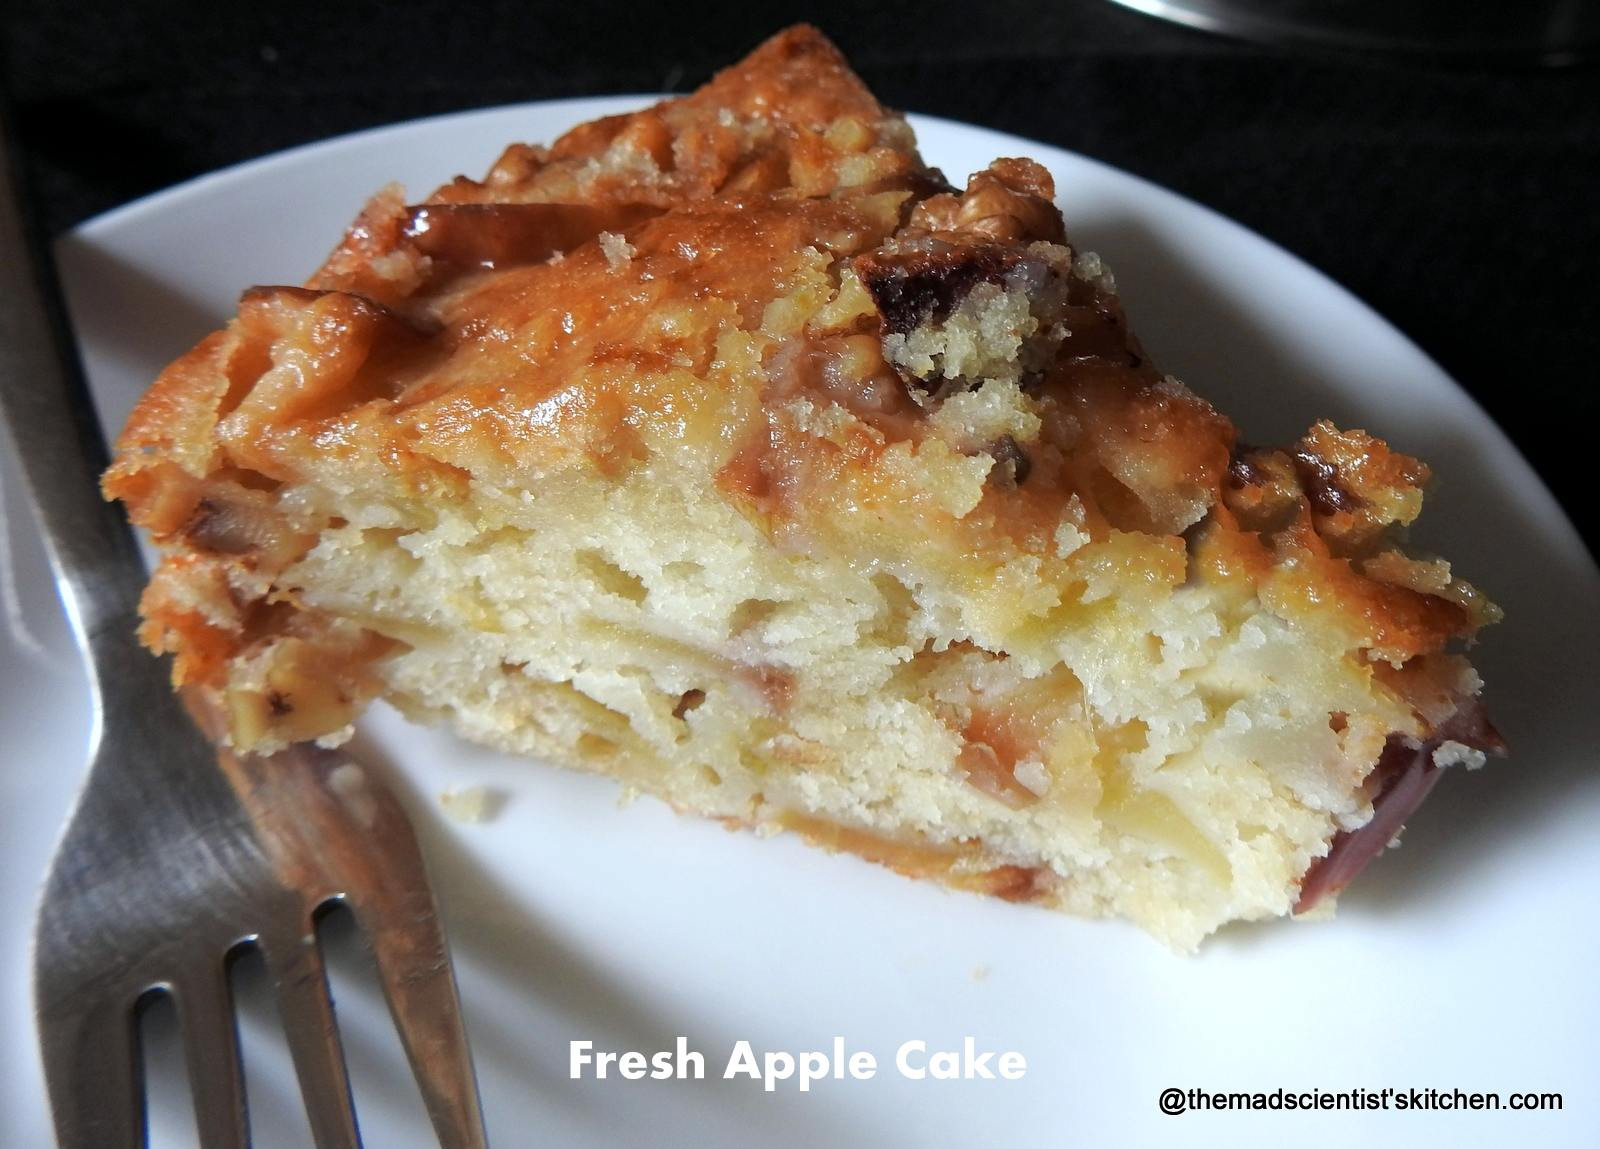 Healthy Apple Cake Recipes With Fresh Apples  Apple Cake with Fresh Apples and Walnuts